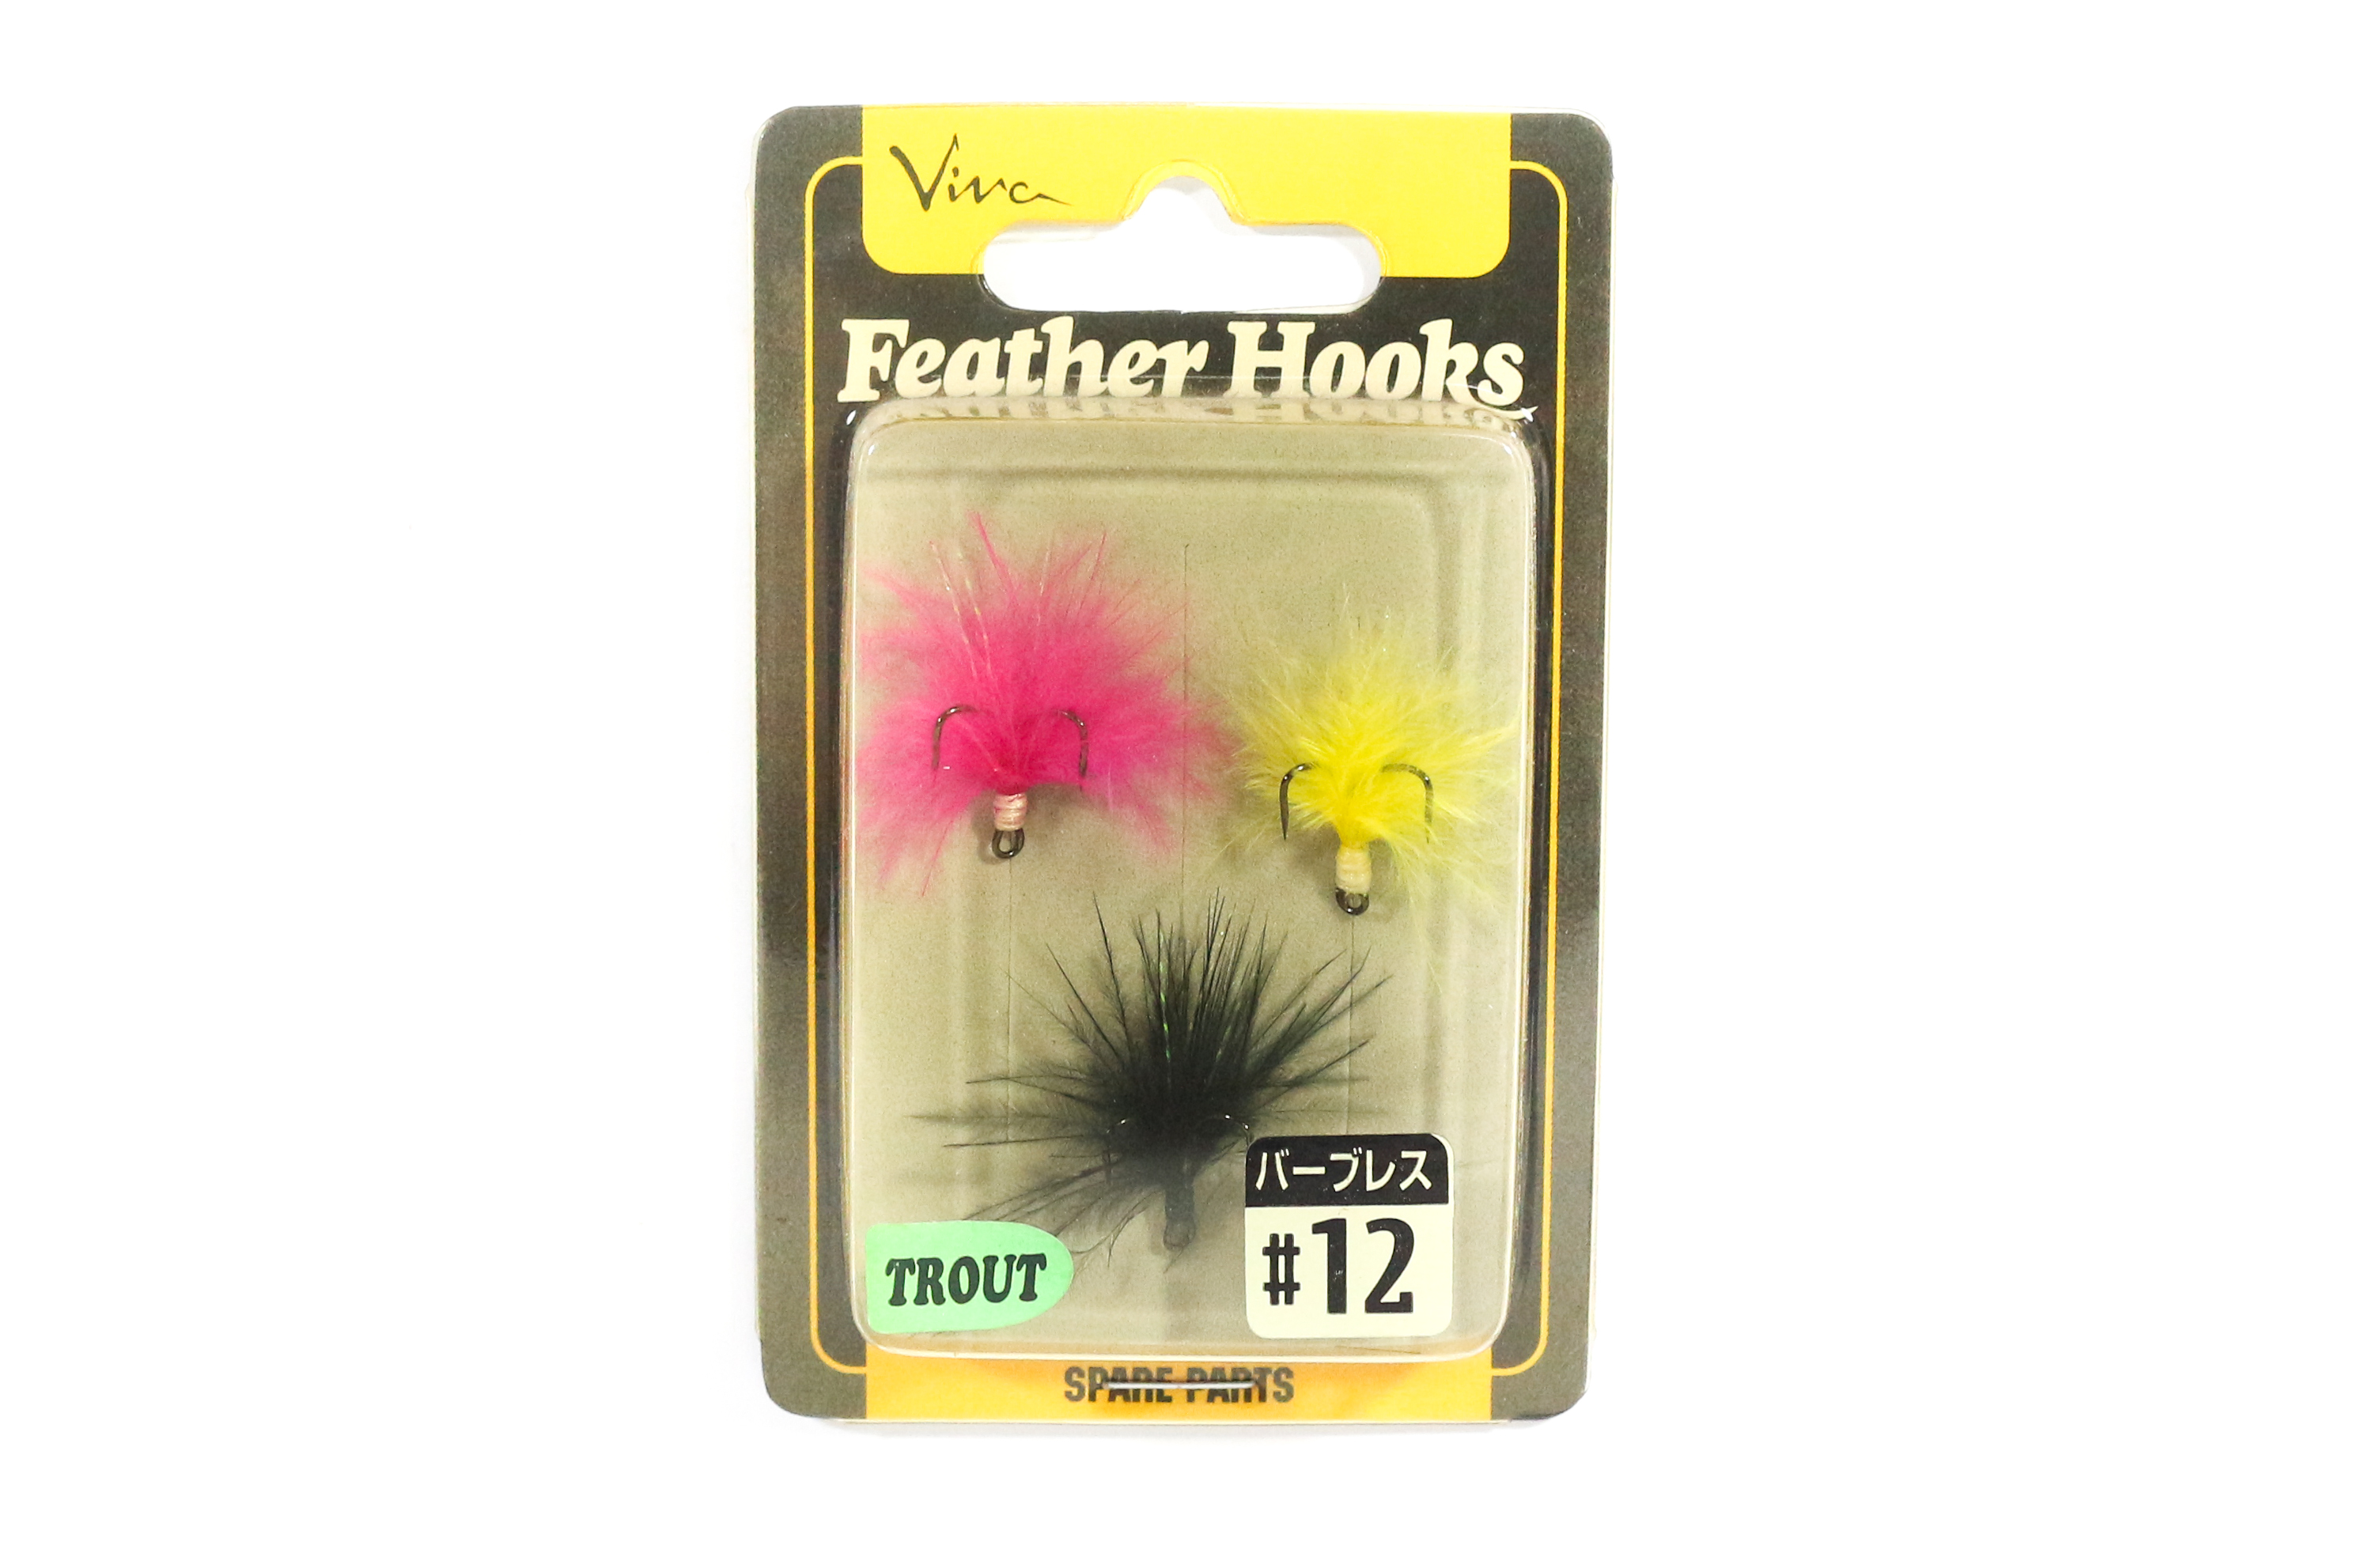 Viva Feather Spare Buck Tail Hooks for Trout Size 12 FH1 (4089)